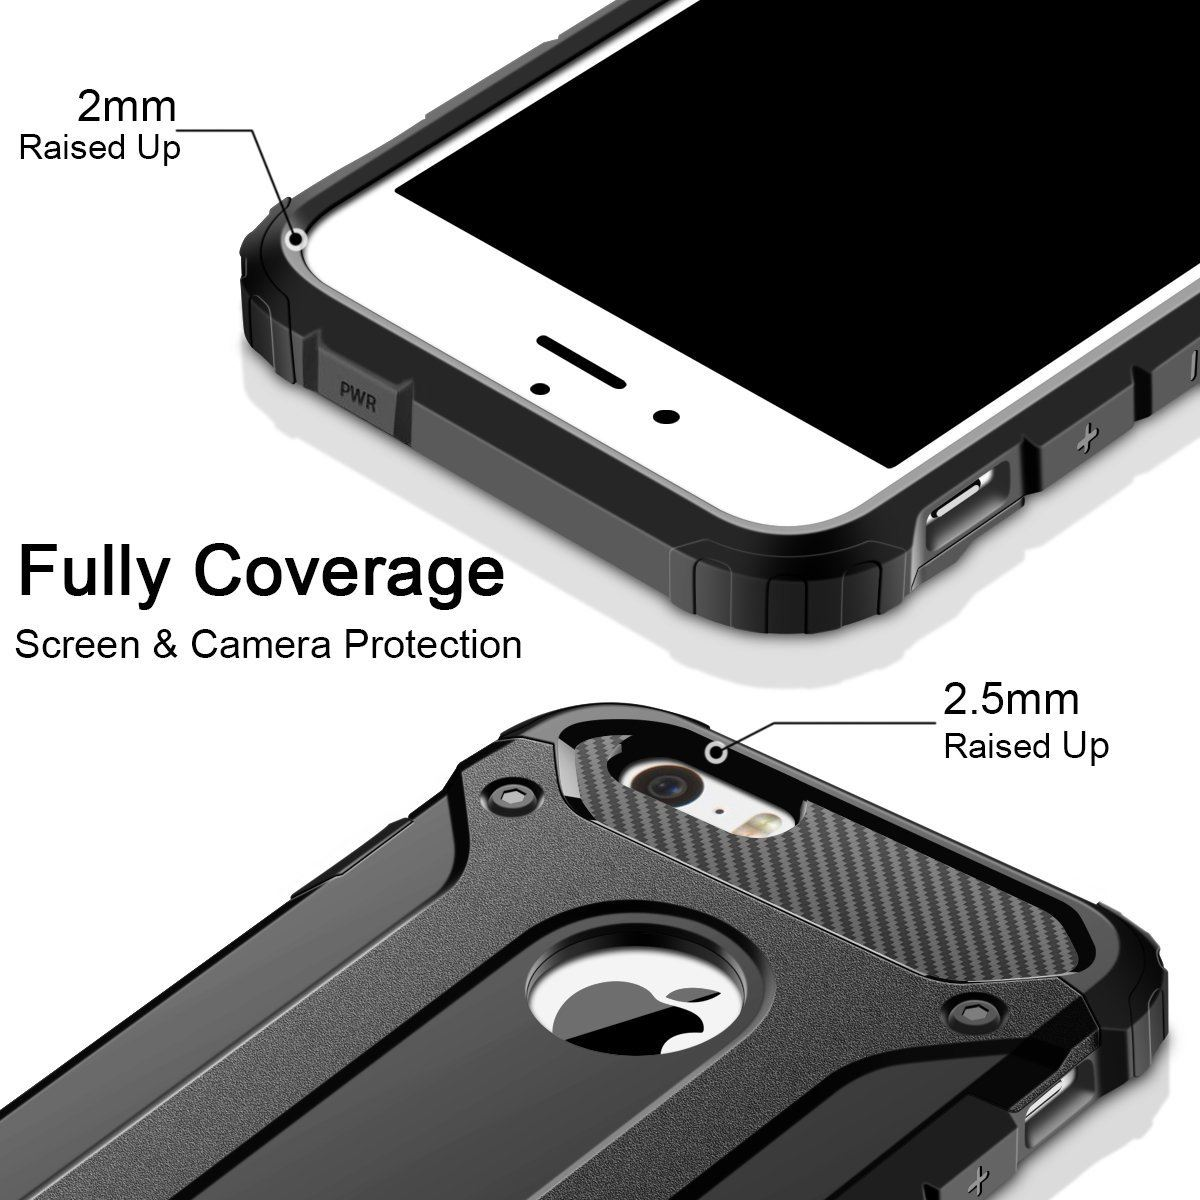 Hybrid-Armor-Shockproof-Rugged-Bumper-Case-For-Apple-iPhone-10-X-8-7-Plus-6s-5s miniature 26